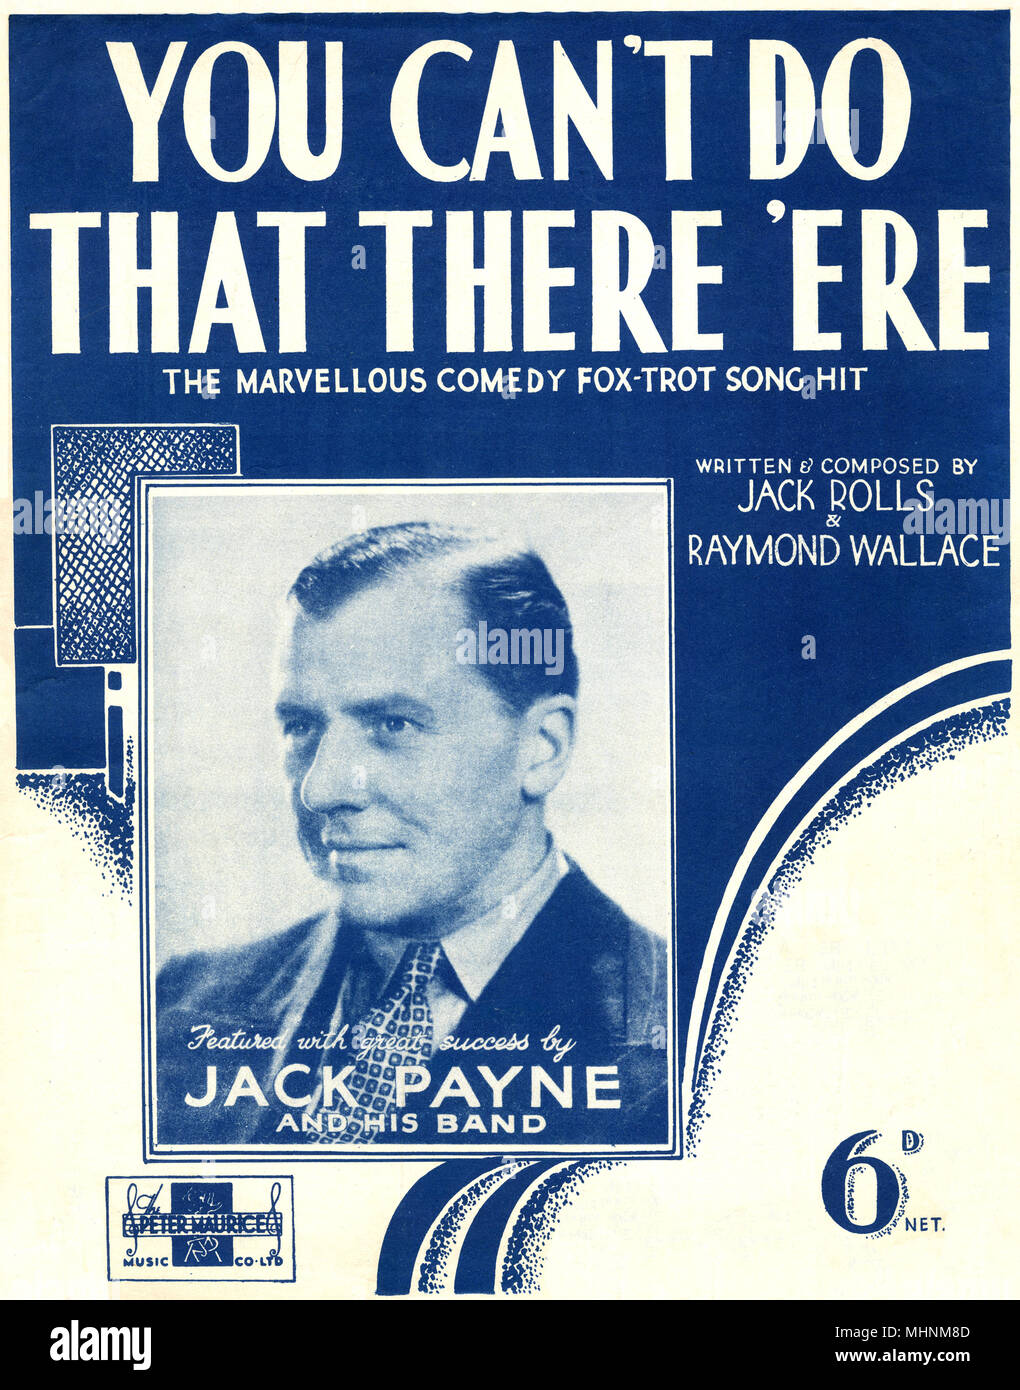 'You cant do that there 'ere' - Music Sheet Cover, the Marvellous comdey fox-trot song hit, written an composed by Jack Rolls and Raymond Wallace and featured with great success by Jack Payne and his band. An illustration with a photo of Jack Payne on the left middle.     Date: circa 1935 - Stock Image